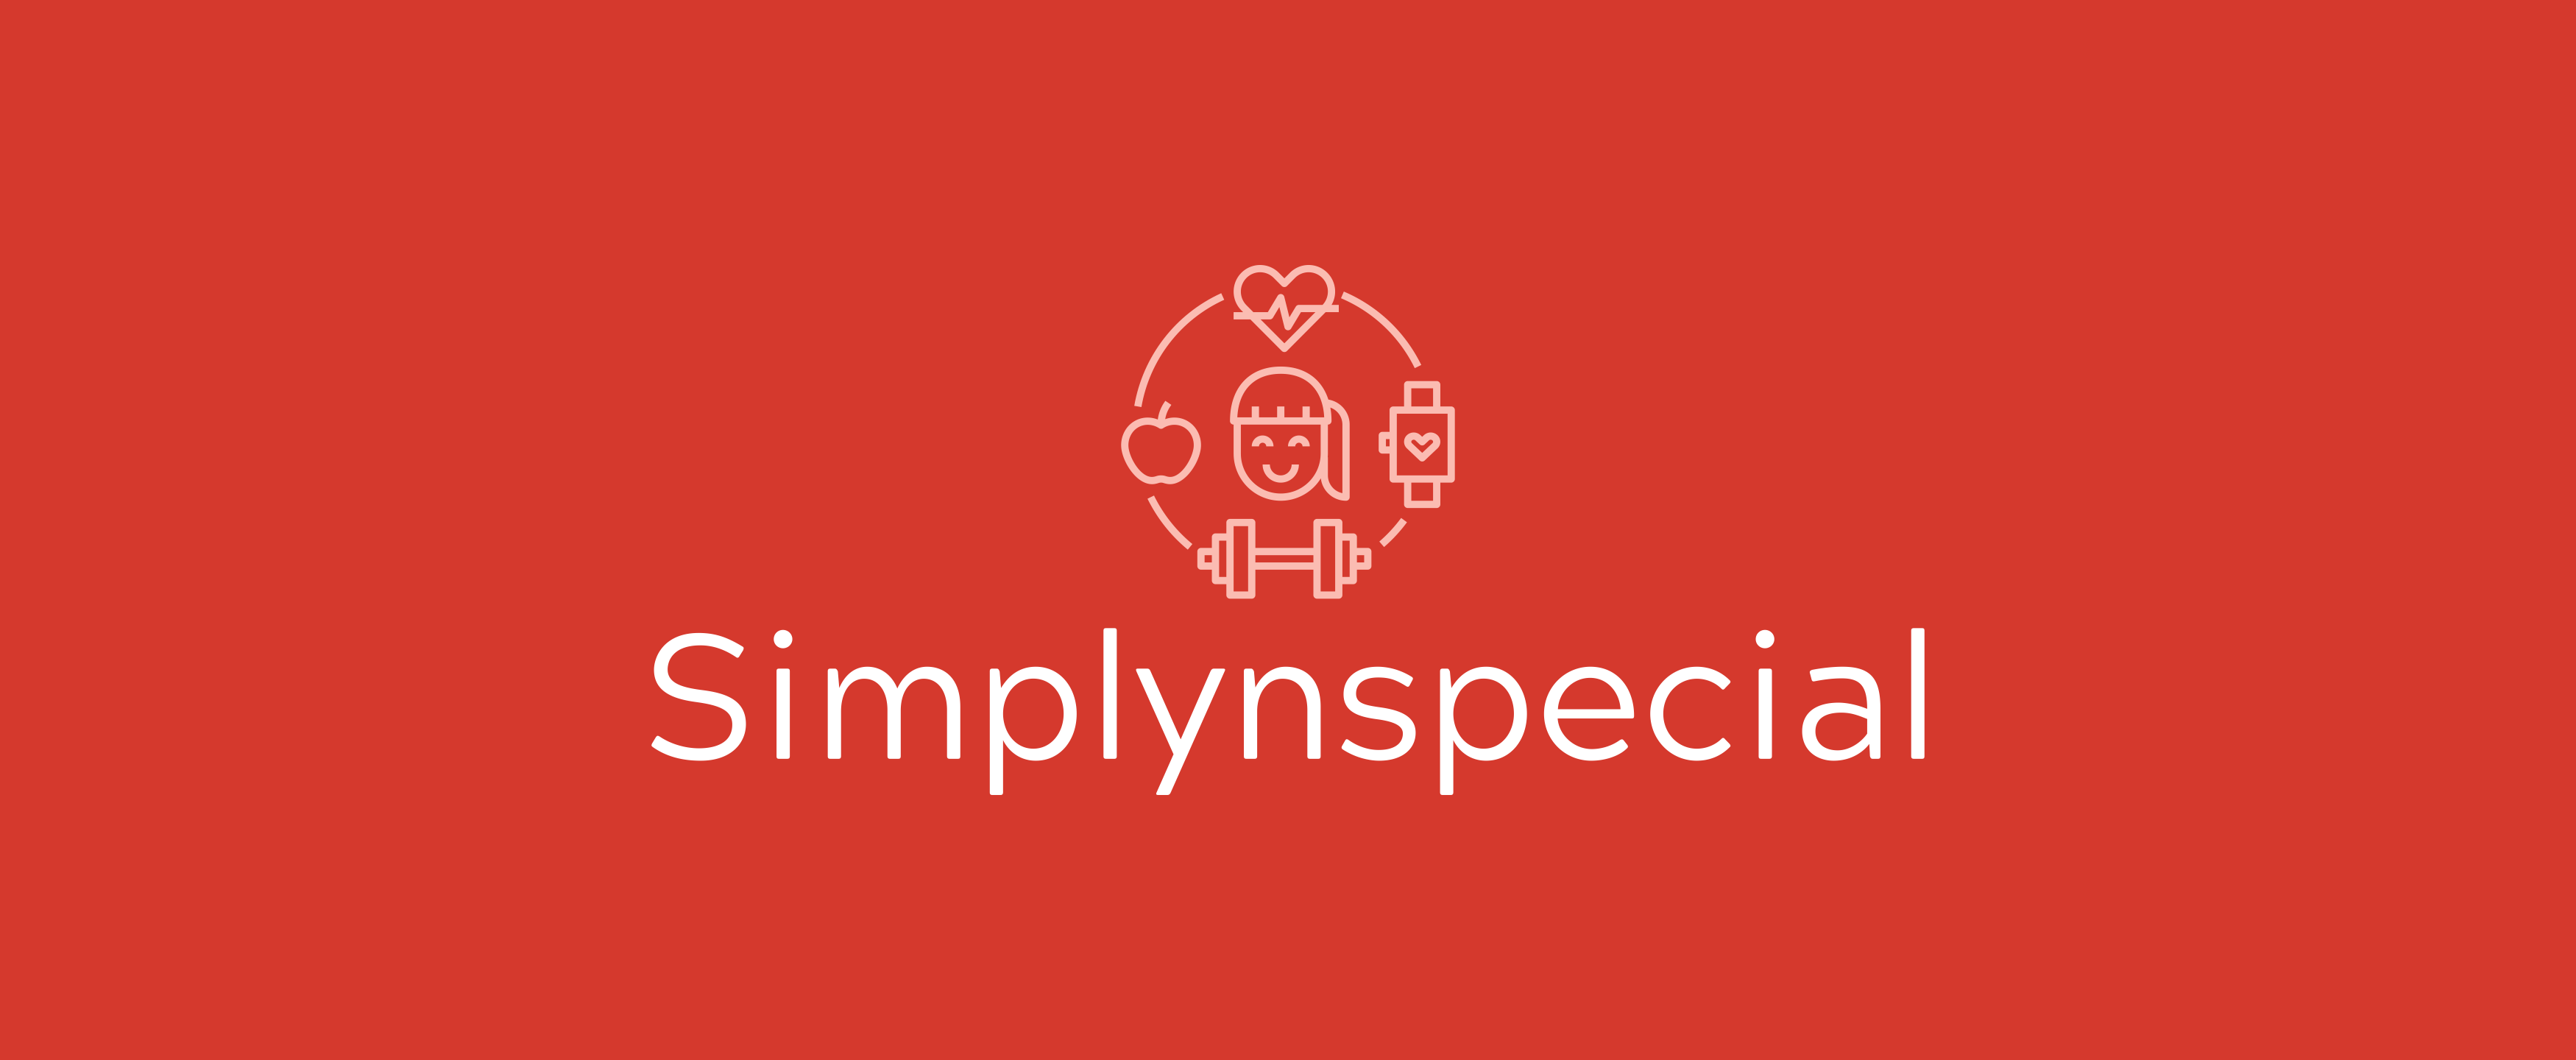 Simplynspecial